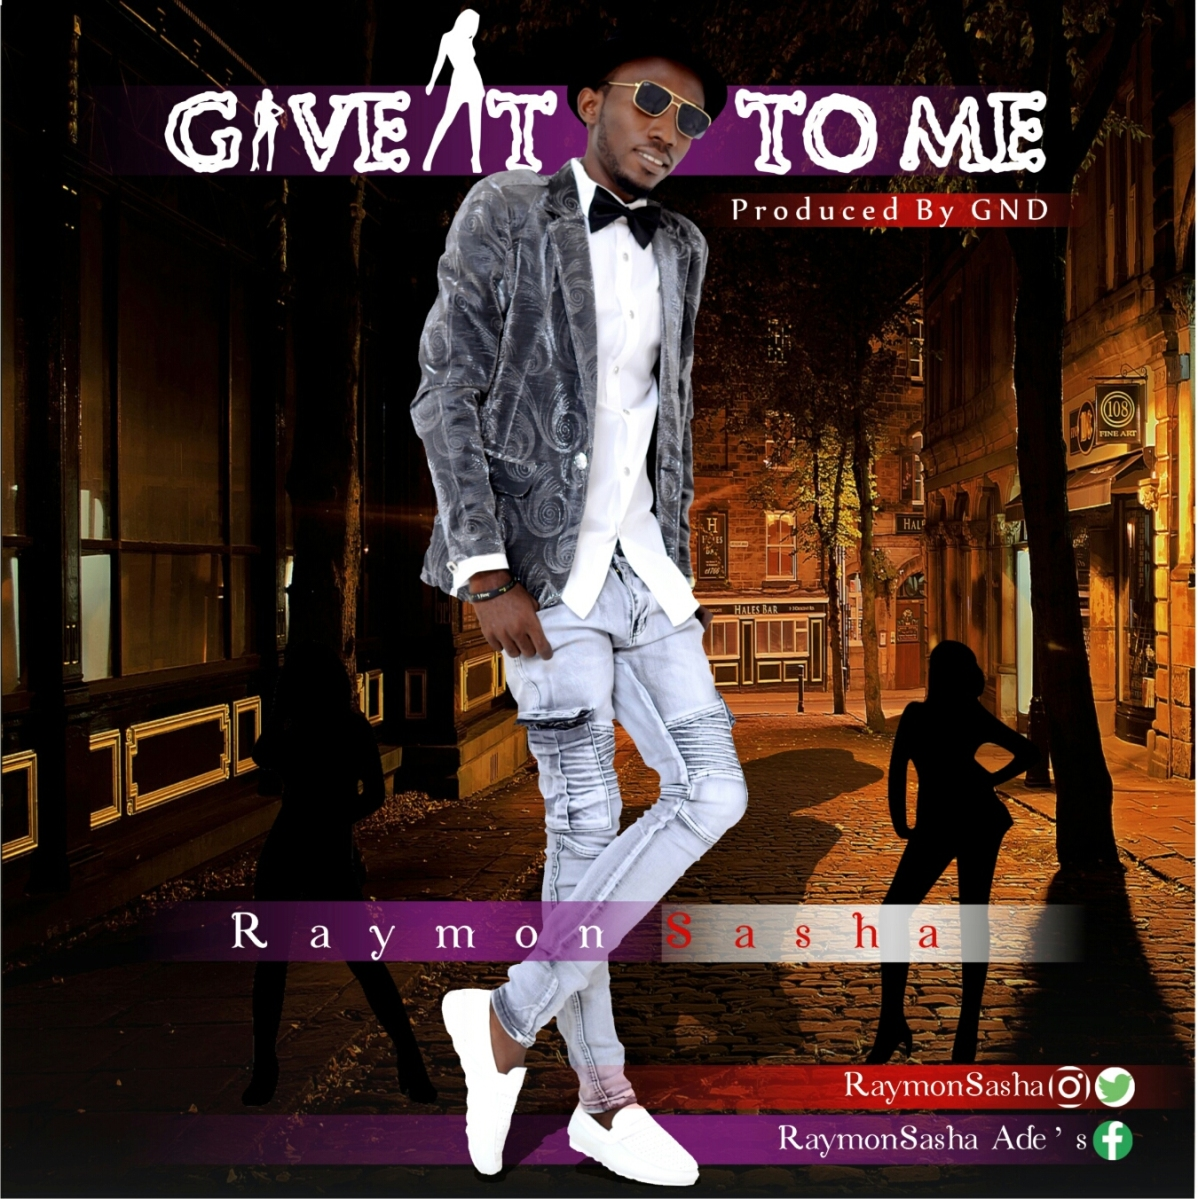 Raymon Sasha - Give It To Me |http://bit.ly/2DudD3X  | @RaymonSasha | #UberTalksMusic